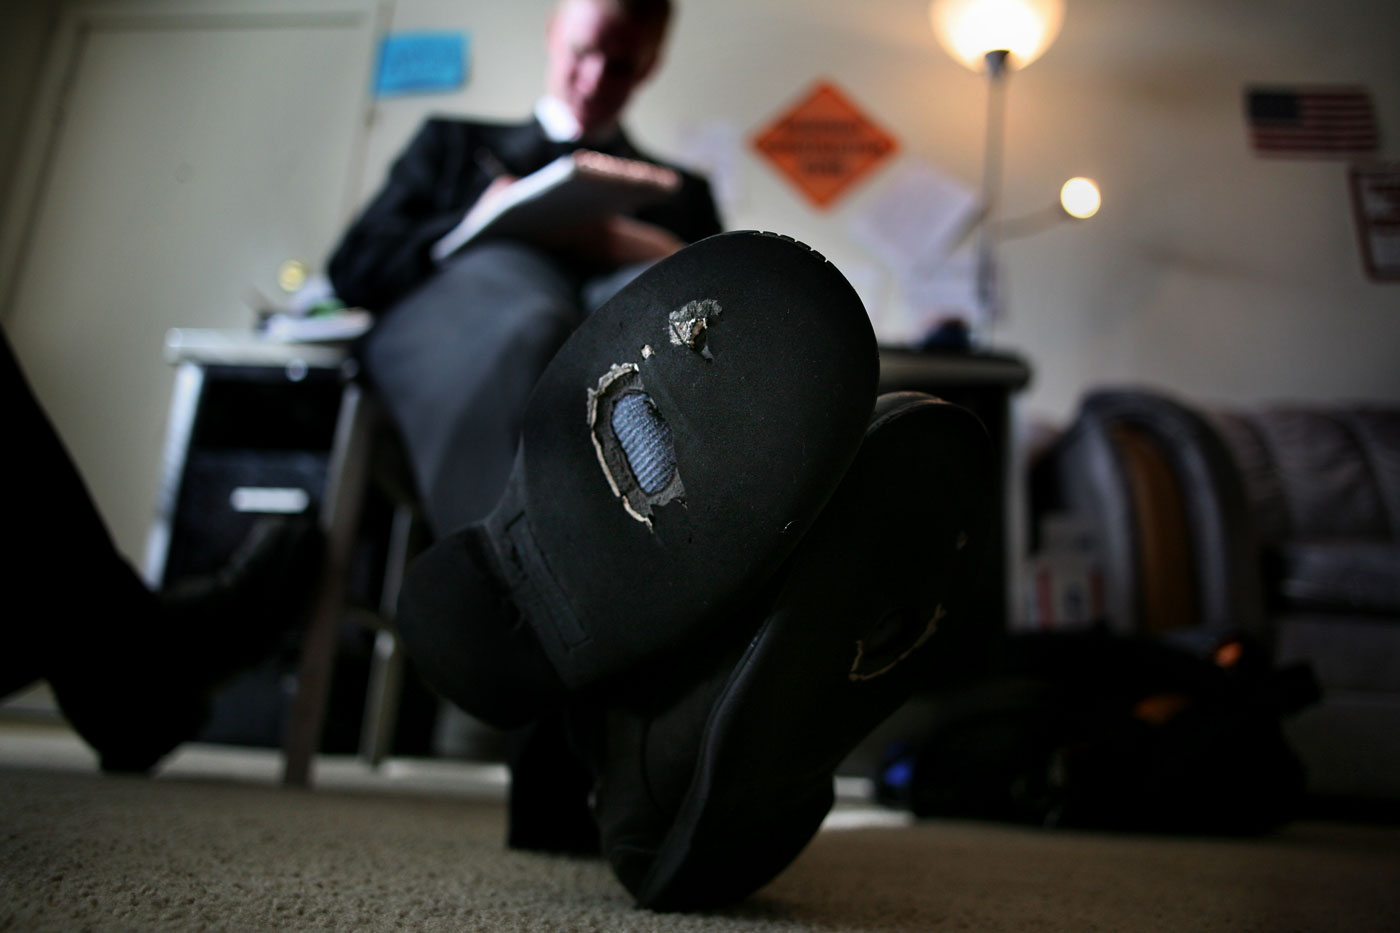 The holes tell a story - a story of almost two years of travels. And while Riley Petersen can afford another pair of shoes, he choses not to. The Mormon missionary is almost at the end of his two-year stint.{quote}They're a symbol of the past two years,{quote} said Petersen, who smiles as he recounts the thousands of miles he has walked, biked and driven in an effort to spread the Mormon mission.